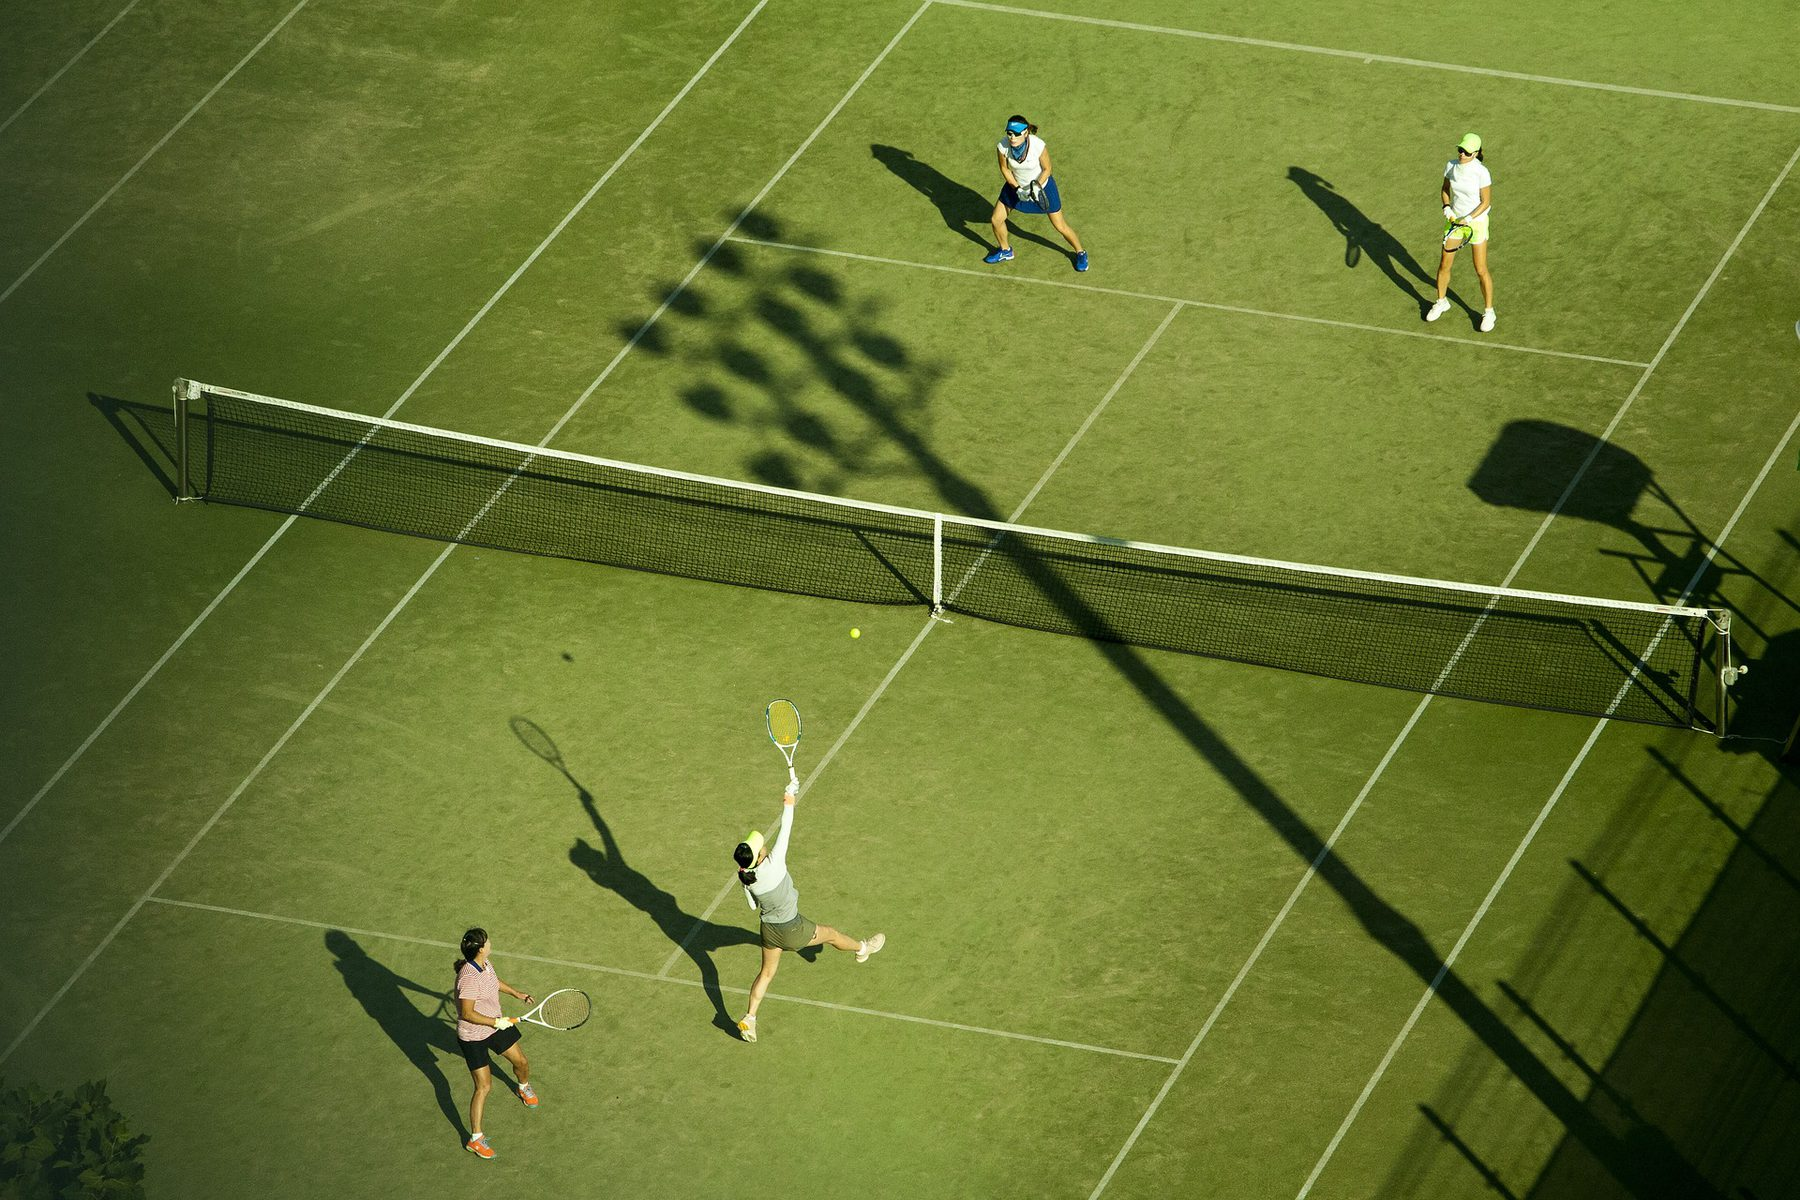 Job Role Image (Sports Journalist: Tennis Match)